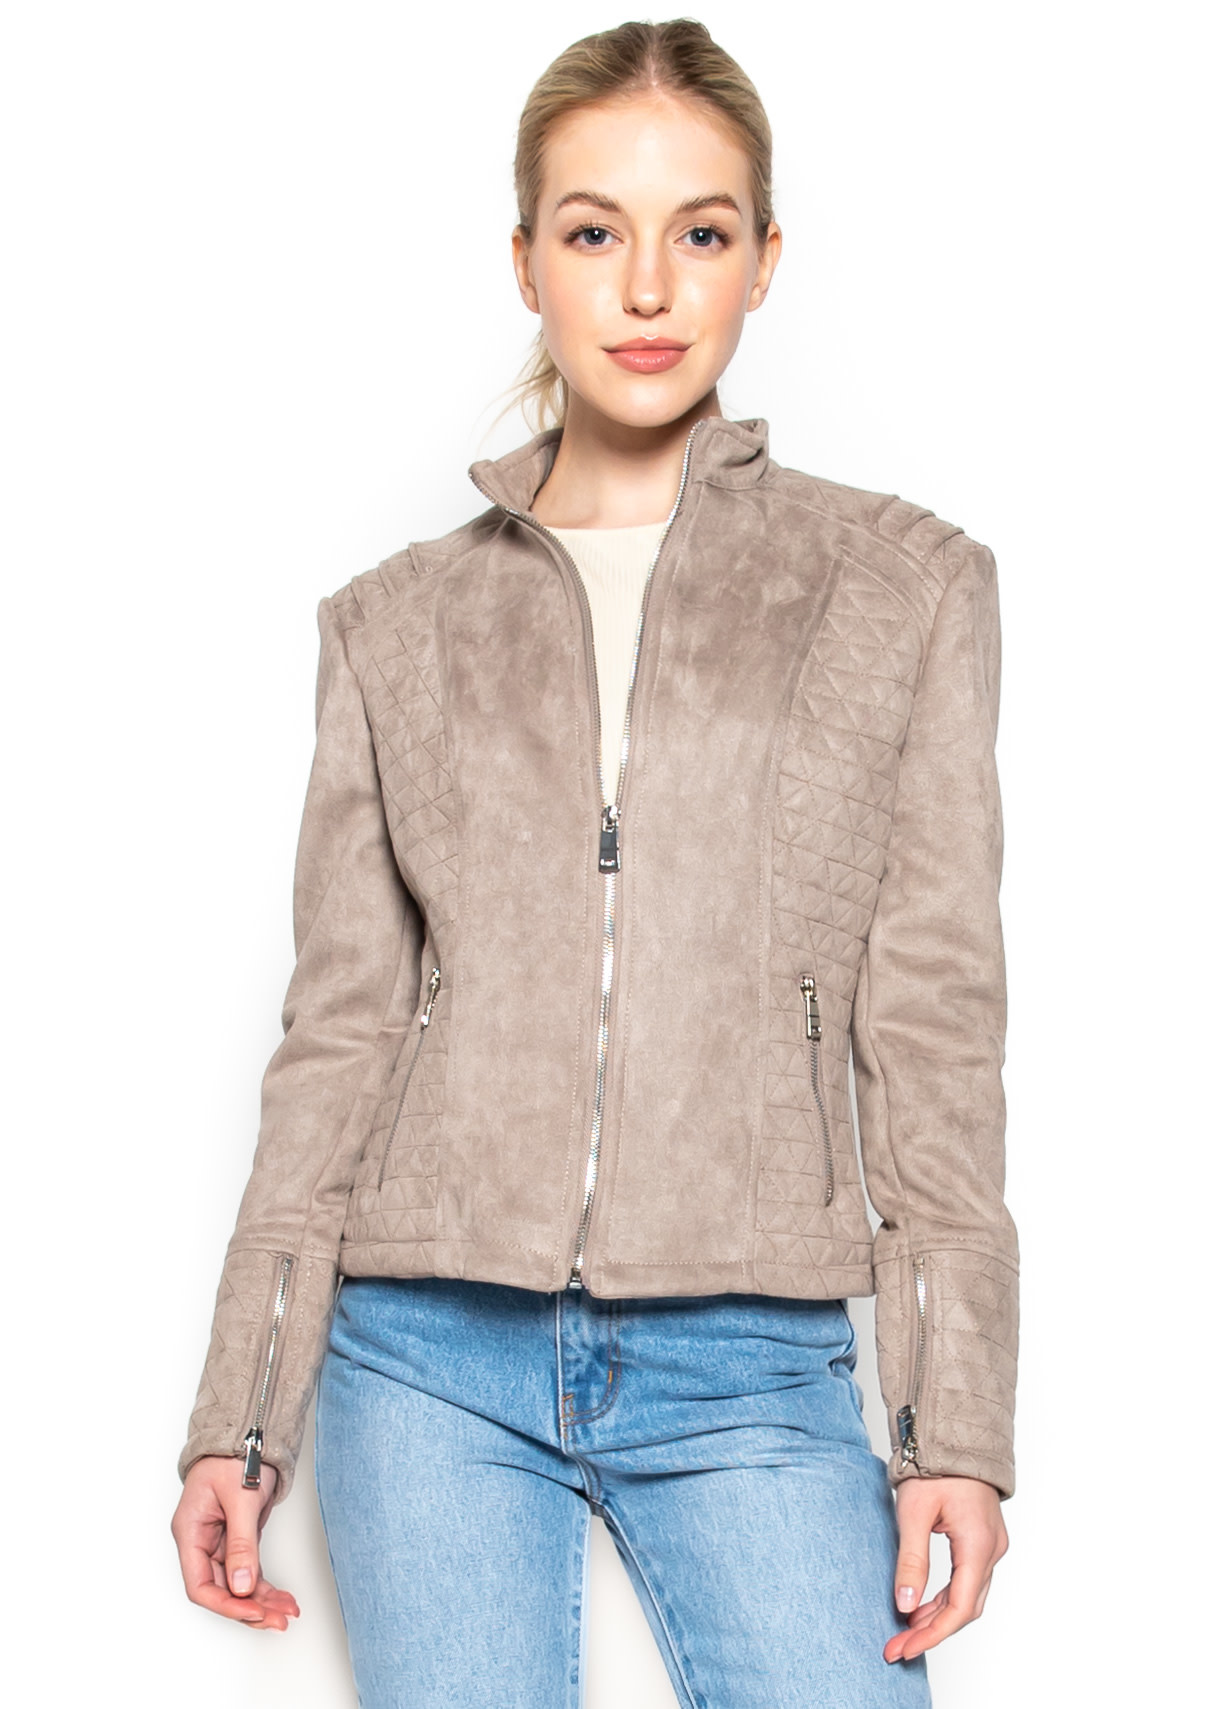 ALL THE RIGHT WAYS JACKET